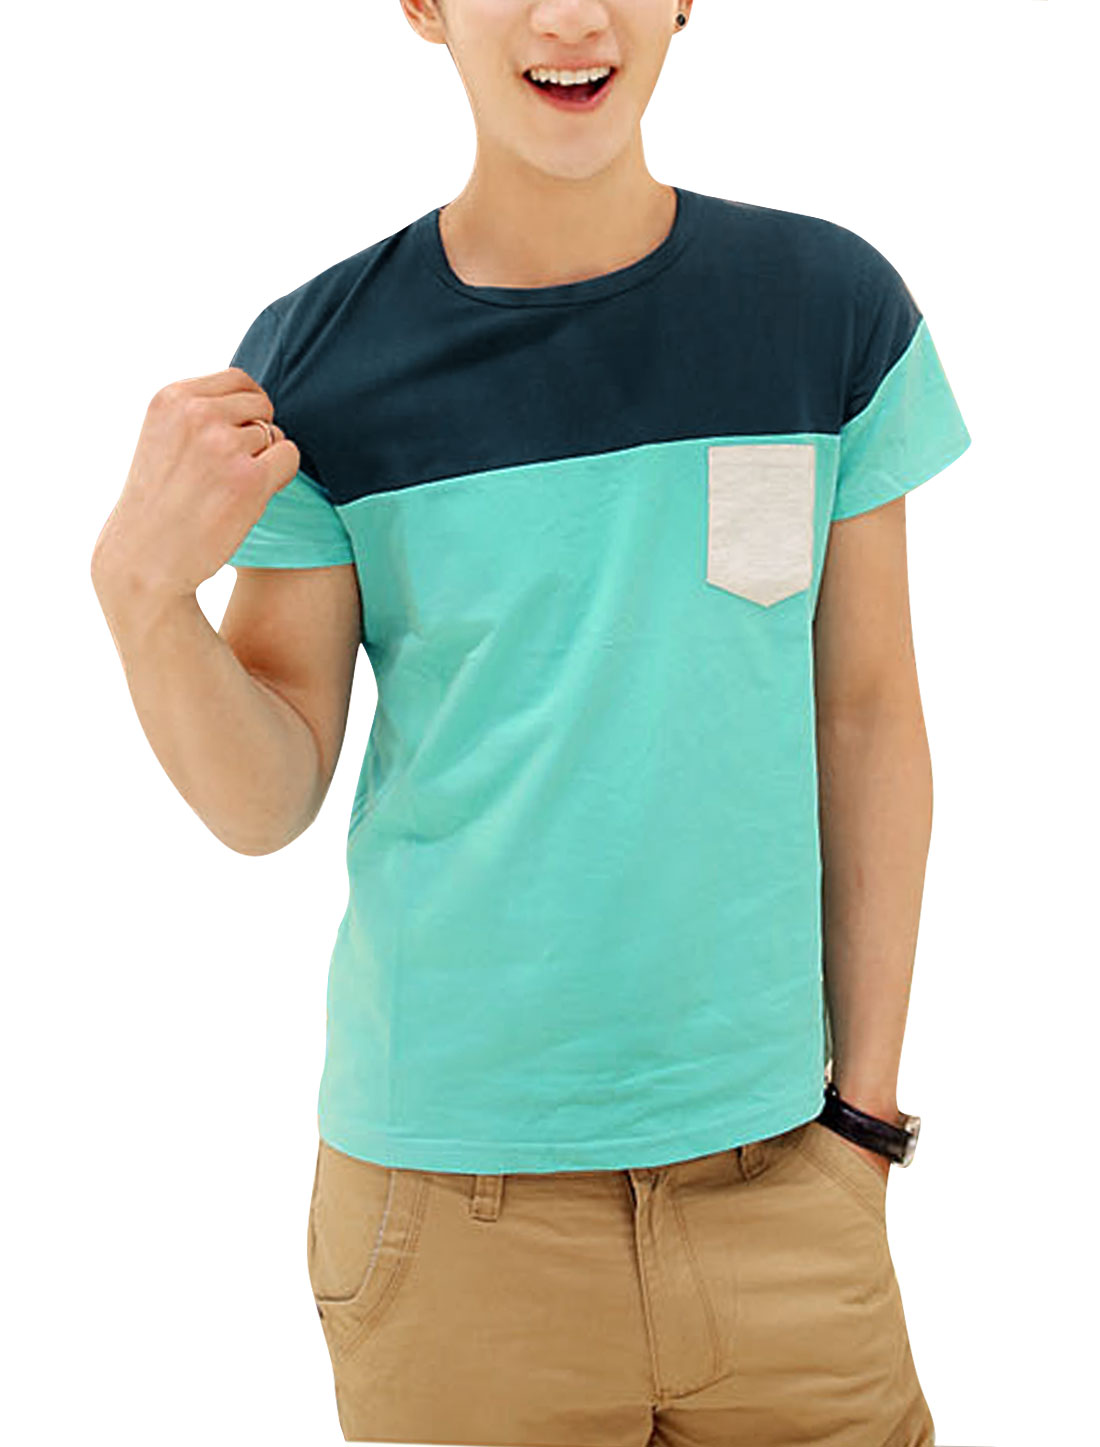 Men Short Sleeve Colorblock Spliced Chest Pocket T-Shirt Aqua Dusty Green S